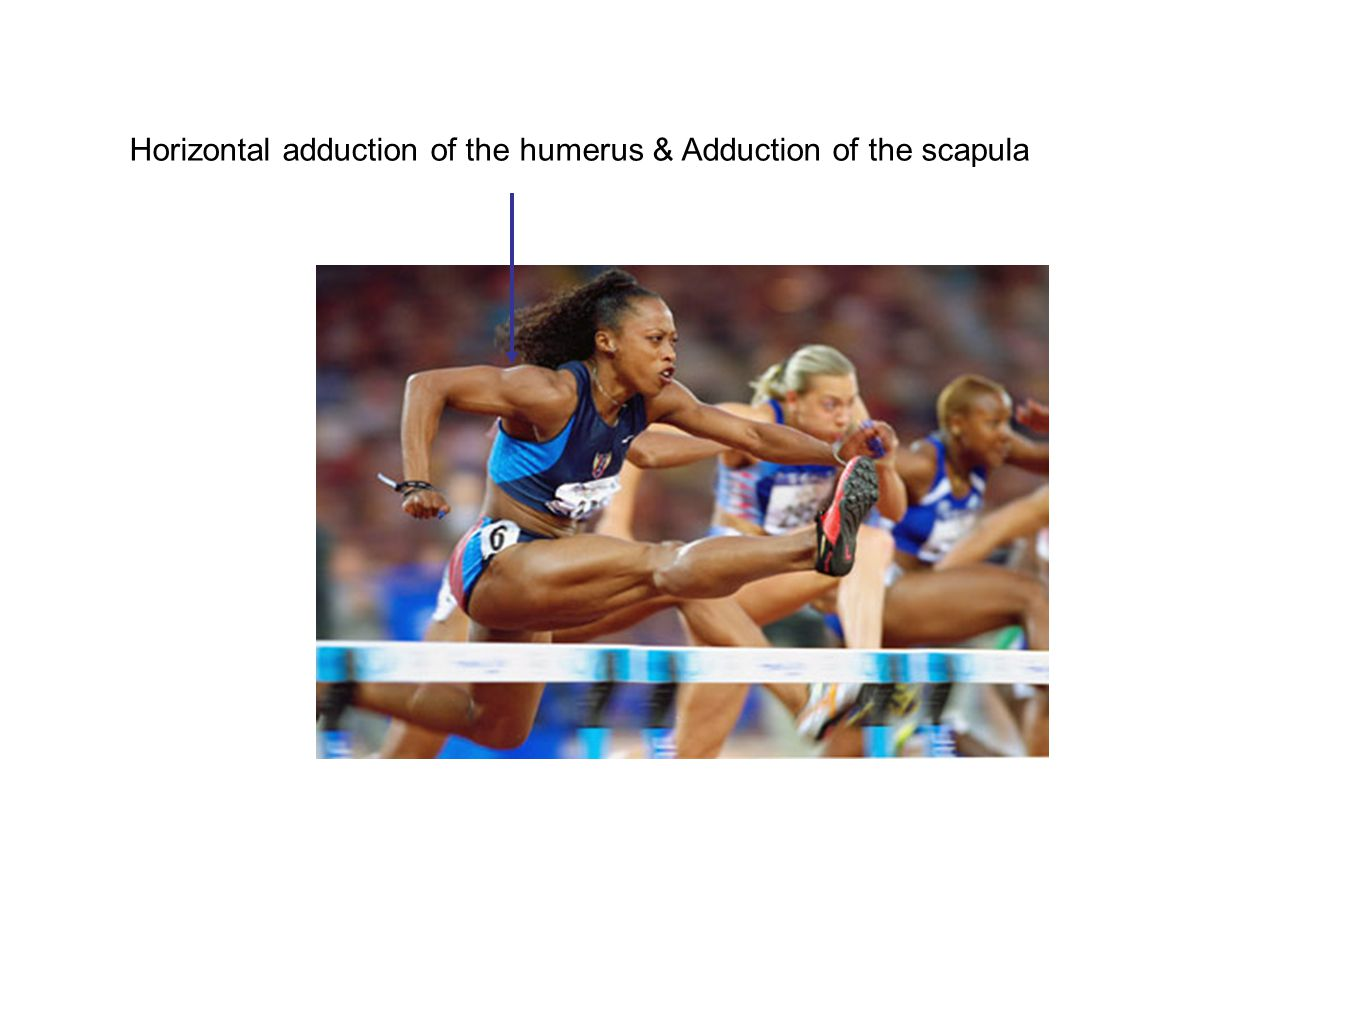 Horizontal adduction of the humerus & Adduction of the scapula